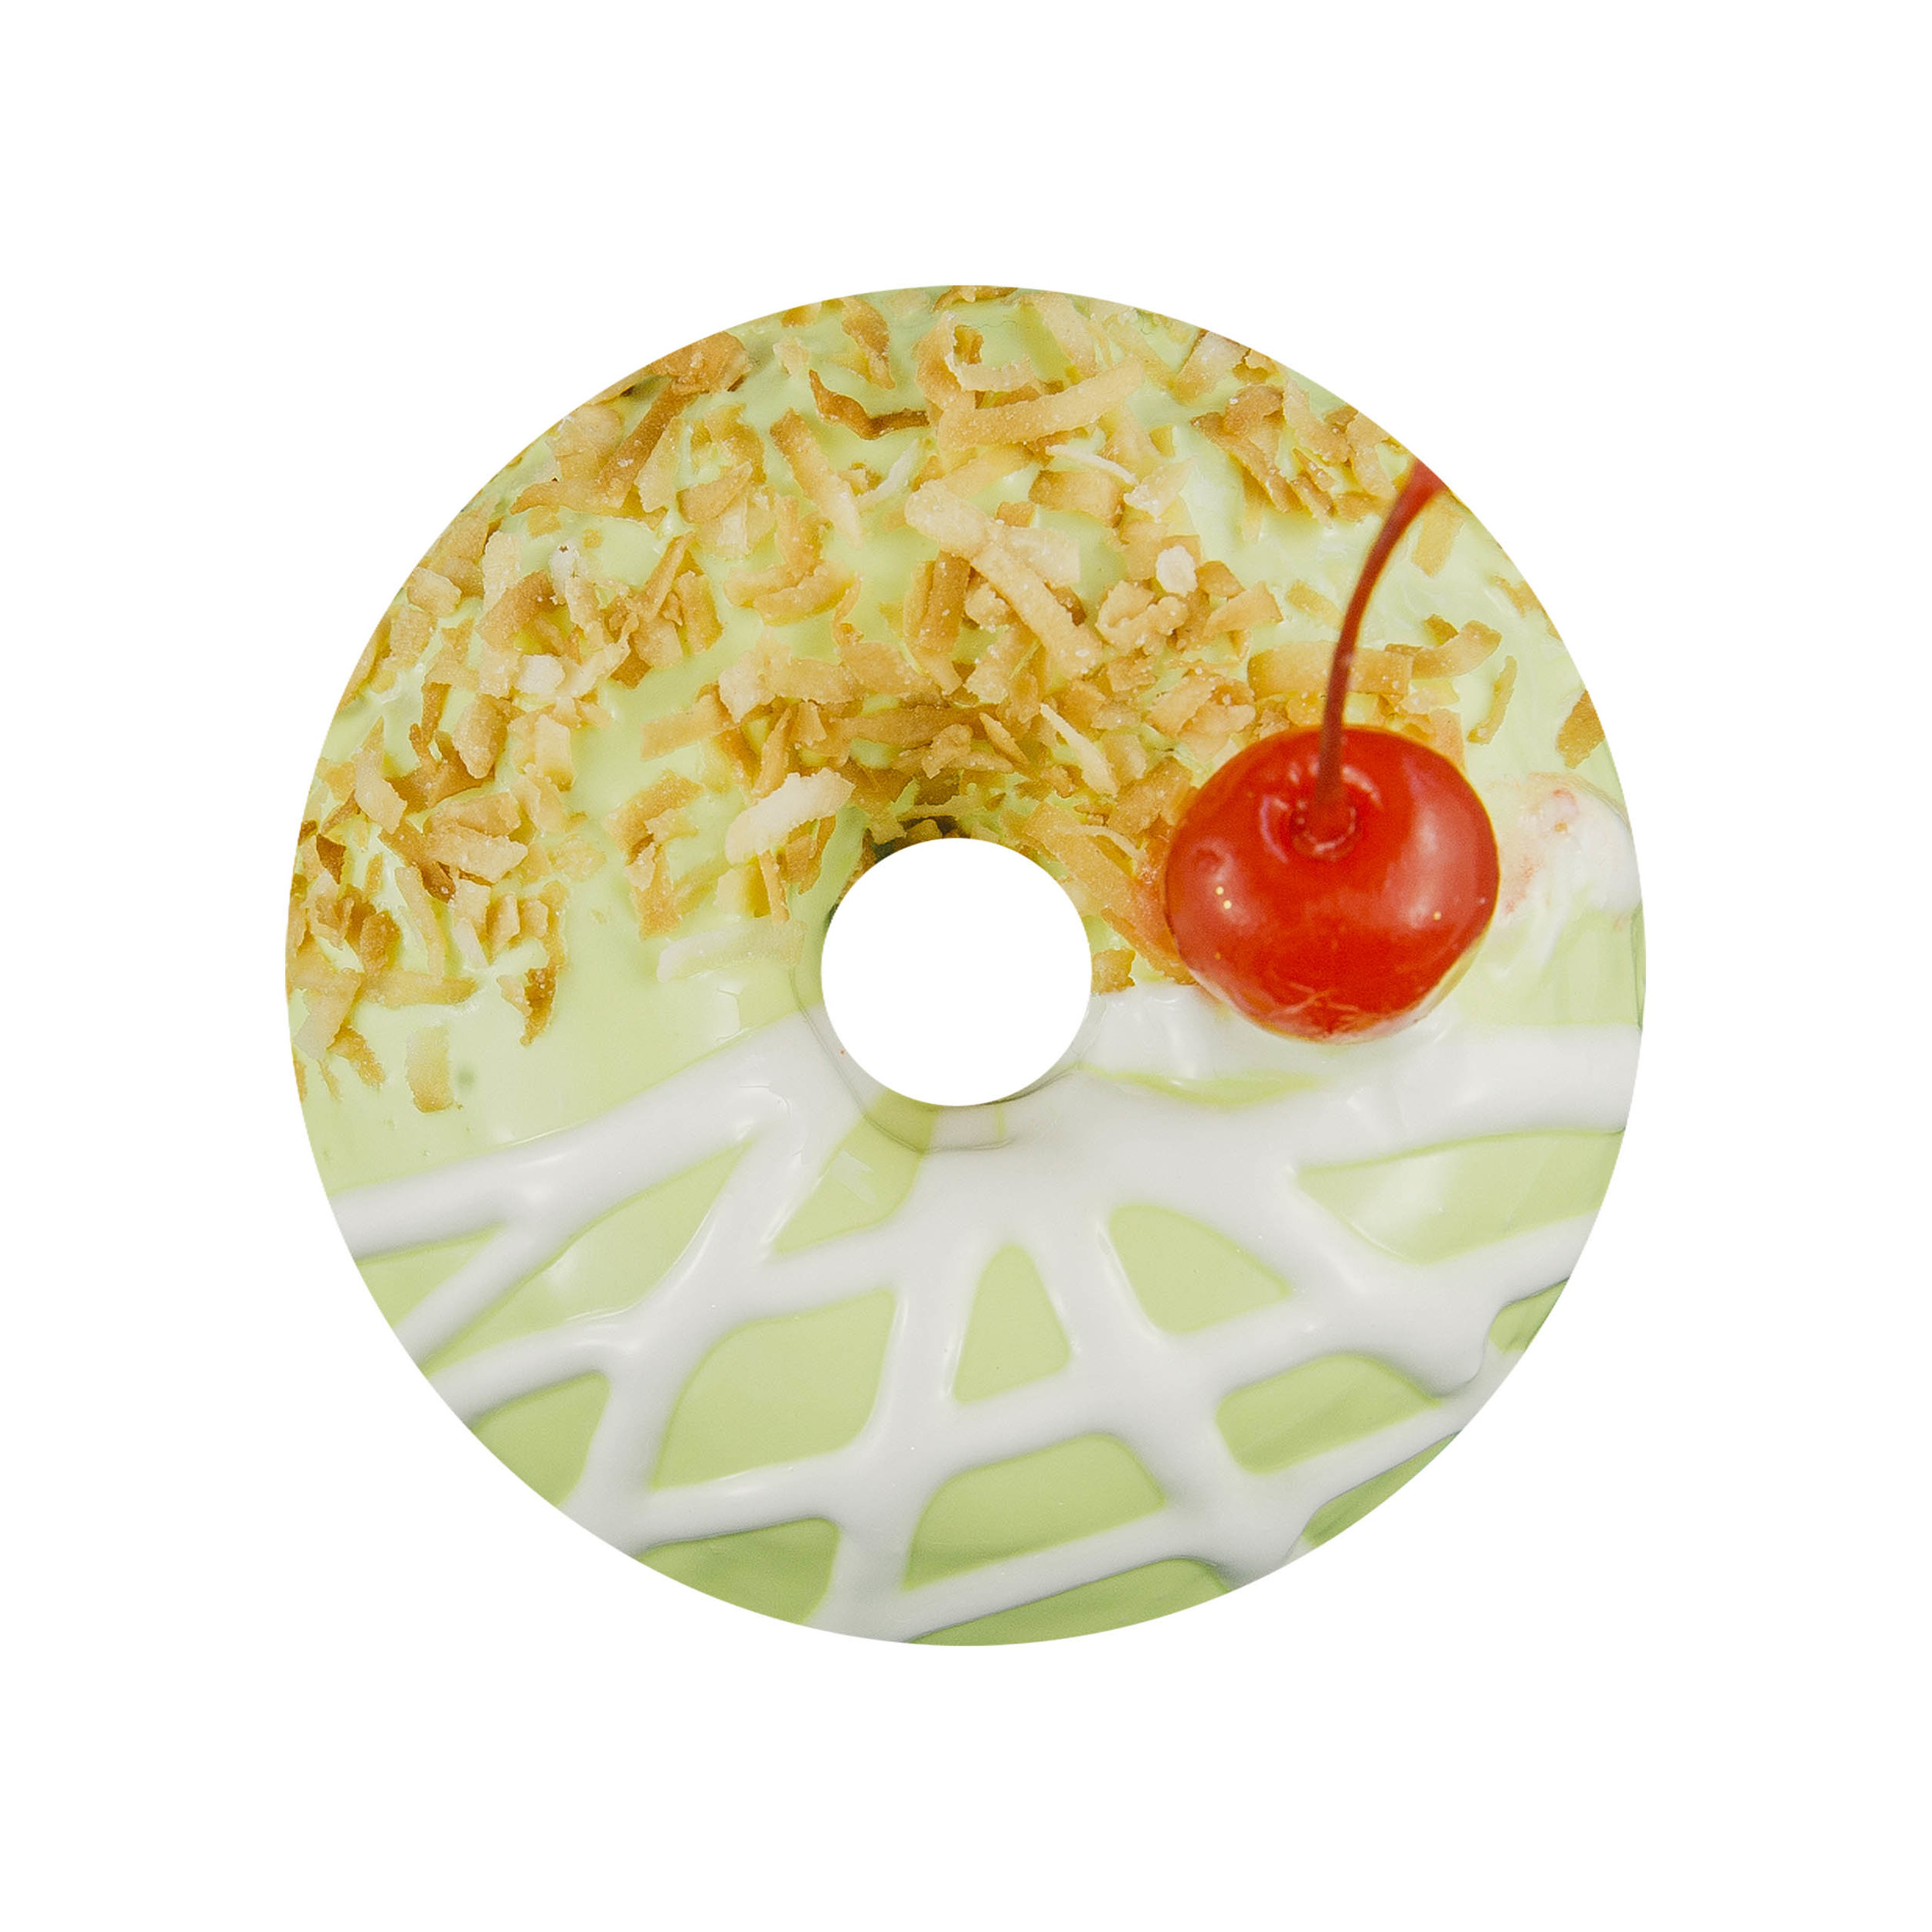 PIÑA COLADA  - PINEAPPLE GLAZE+ TOASTED COCONUT+ MARASCHINO CHERRY